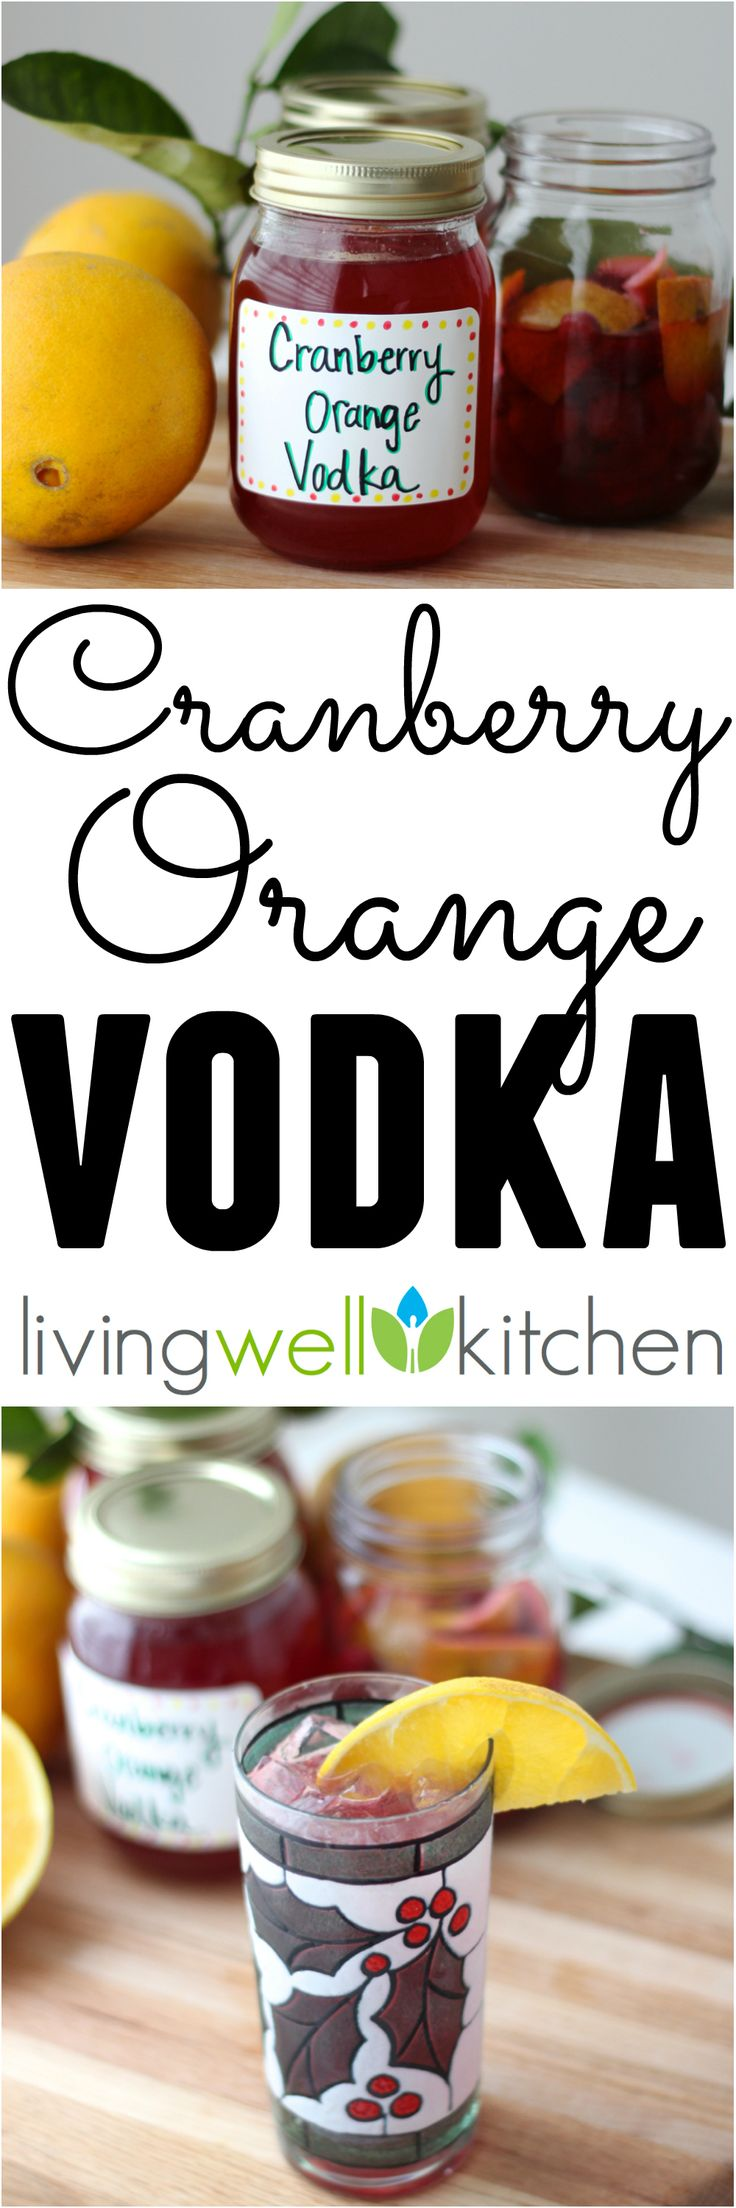 Homemade infused vodka perfect for a Christmas gift or to make fun holiday alcoholic beverages. Cranberry Orange Vodka recipe is great for a festive holiday drink or even as a signature party drink idea